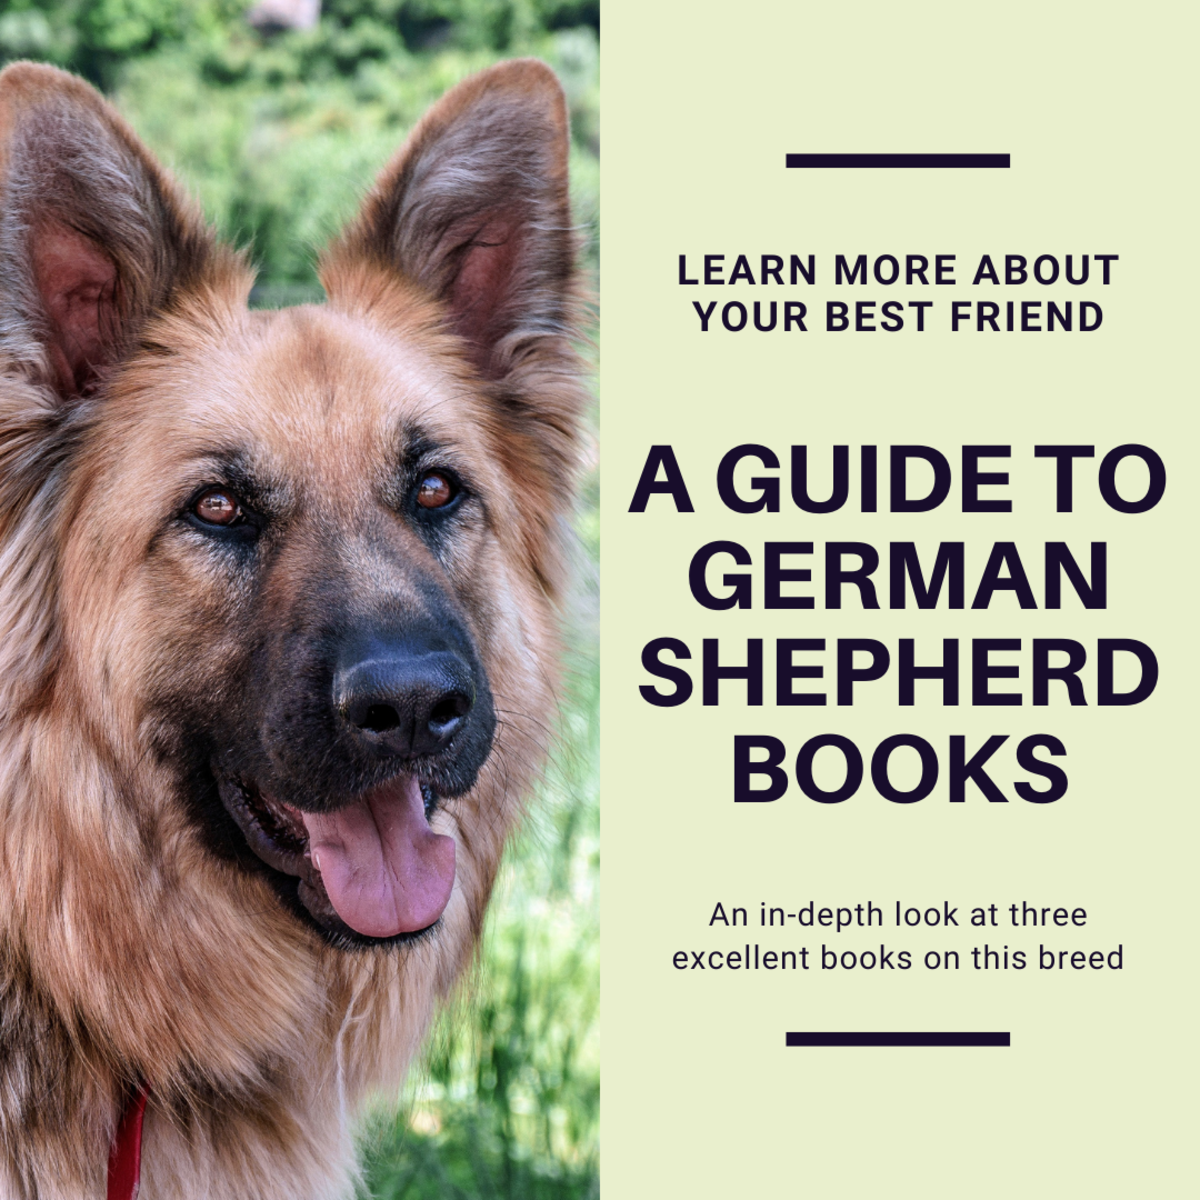 Learn more about your best friend with these books.